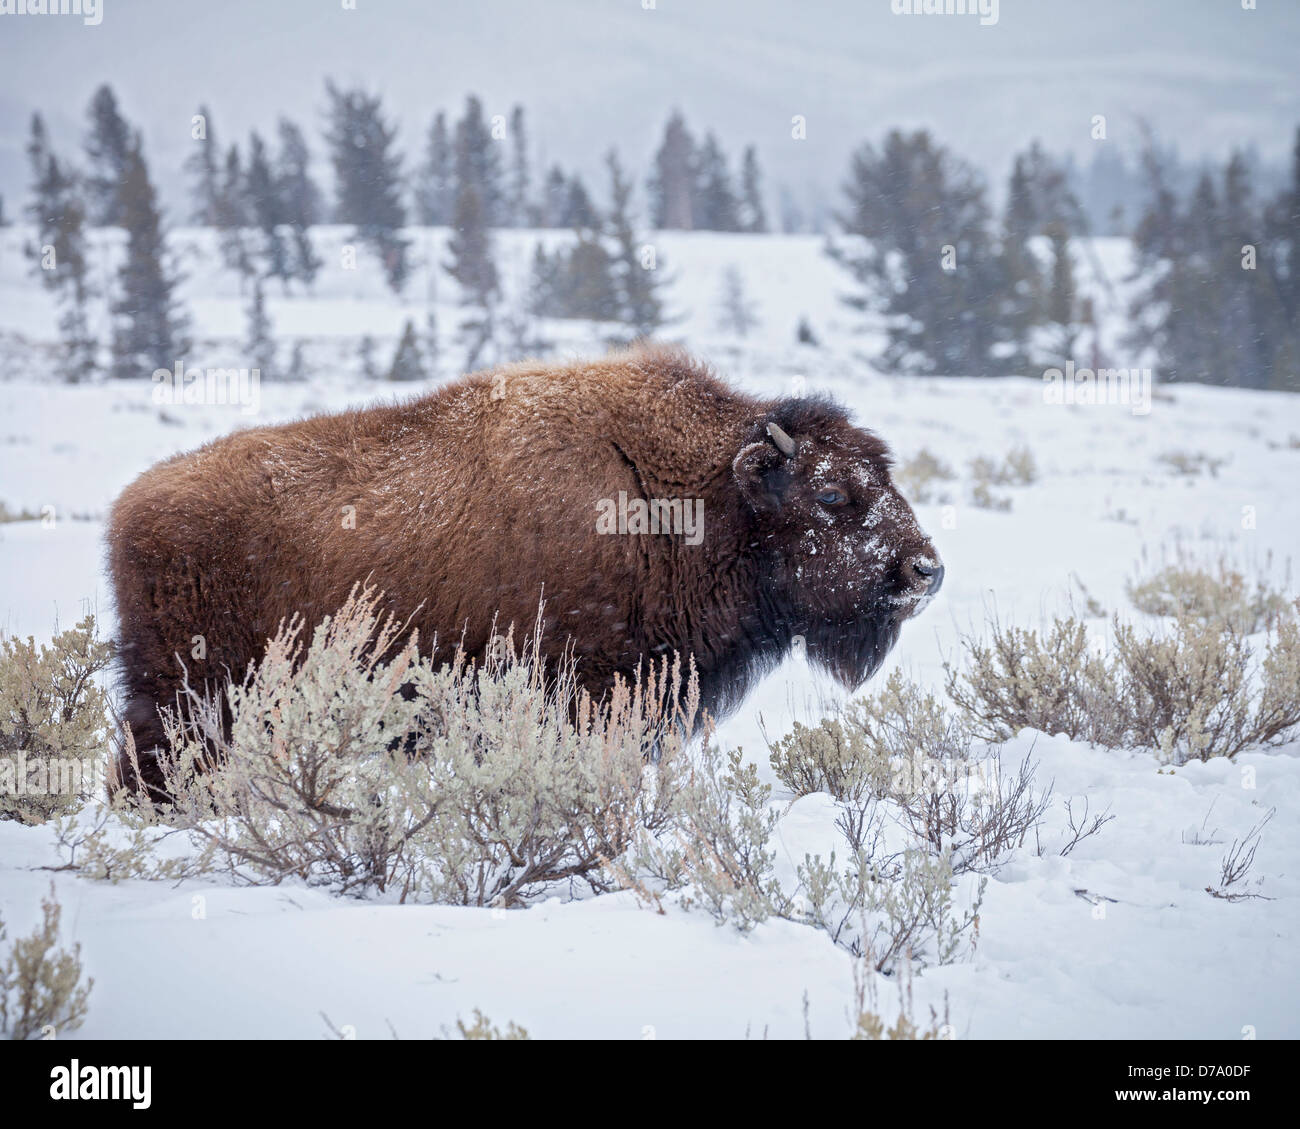 Yellowstone National Park, WY: American Bison covered with morning frost in the Lamar Valley, winter - Stock Image